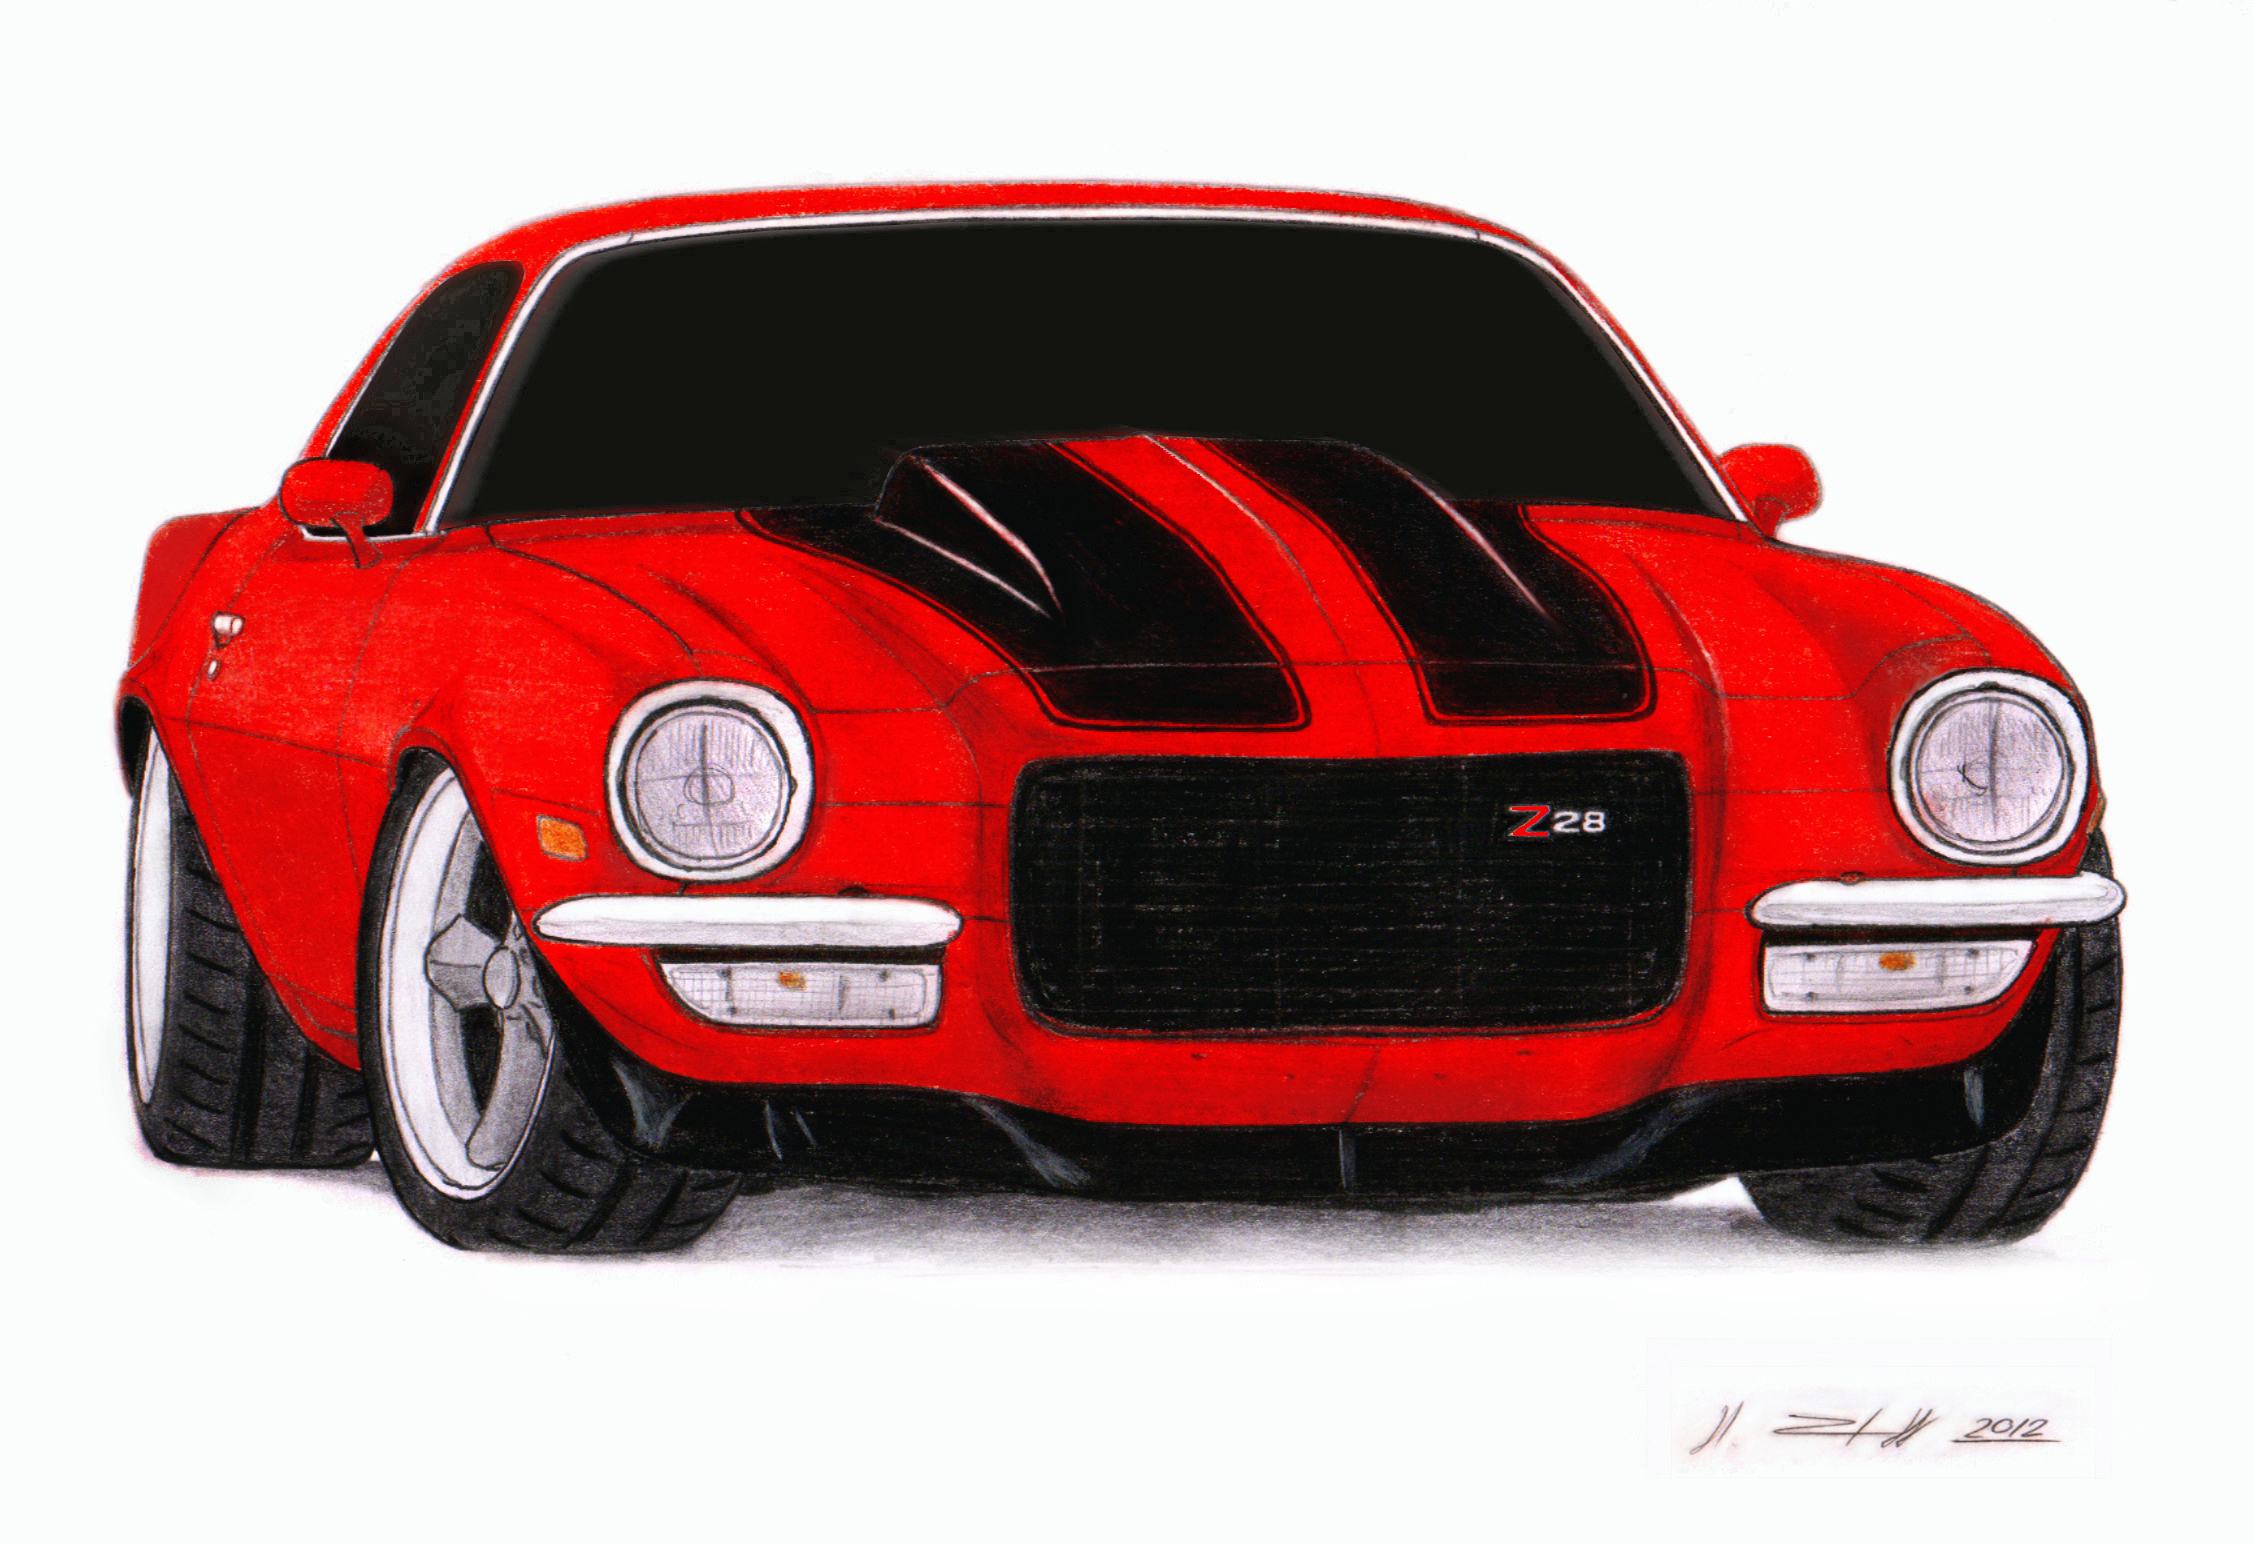 1972 chevrolet camaro z28 pro touring drawing by cougar clip art free cougar clipart for schools